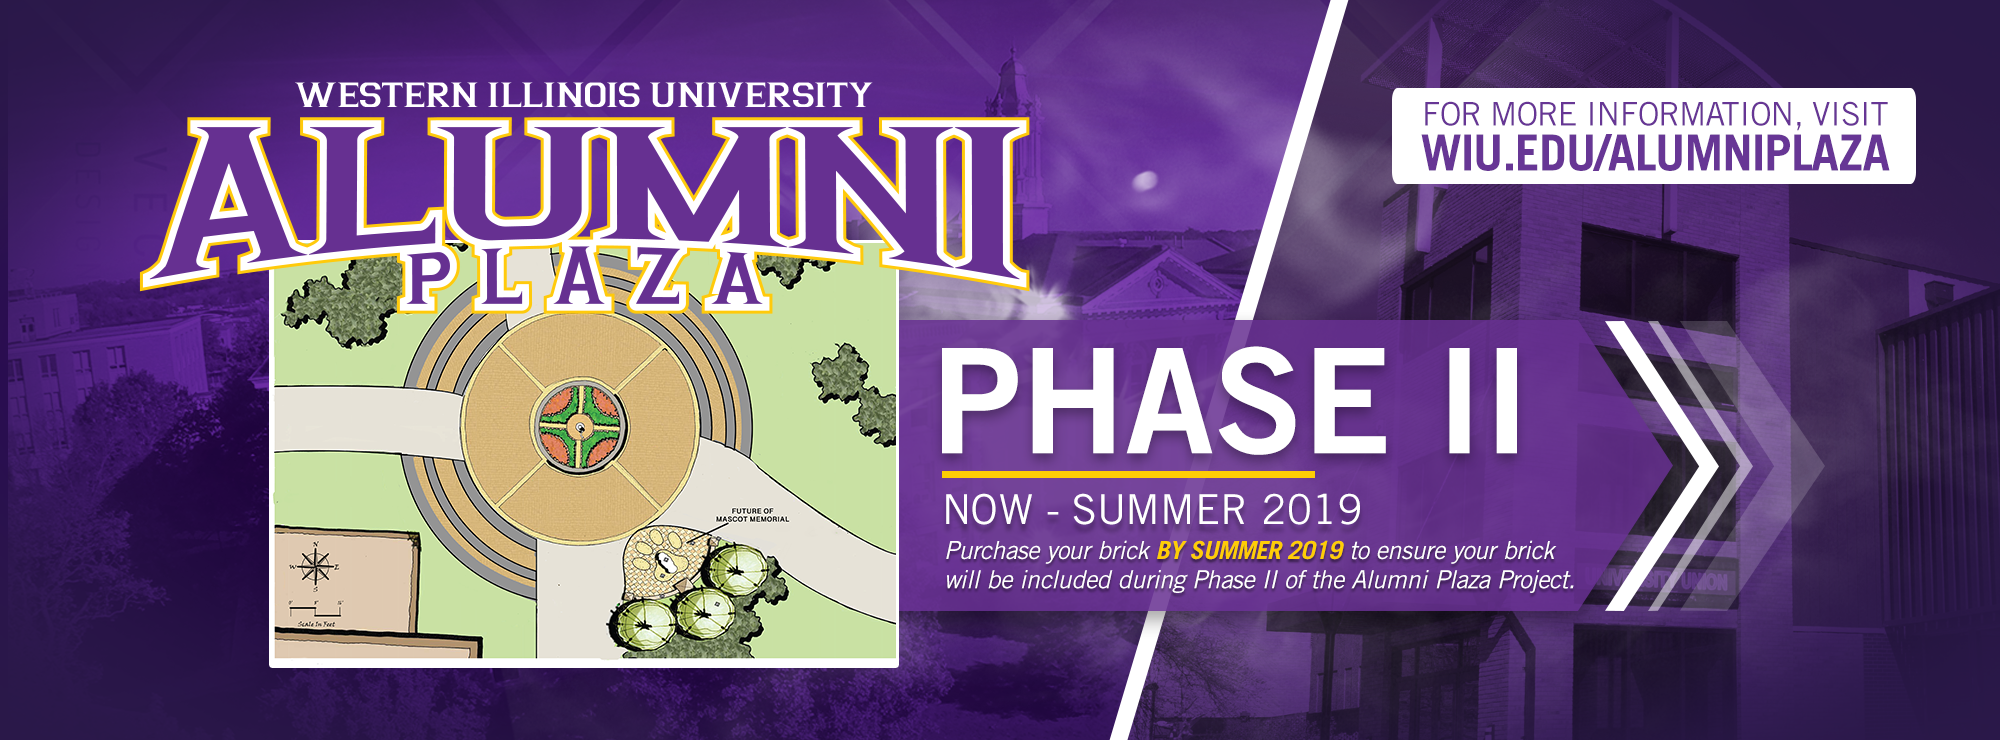 WIU Alumni Plaza Phase 2 graphic